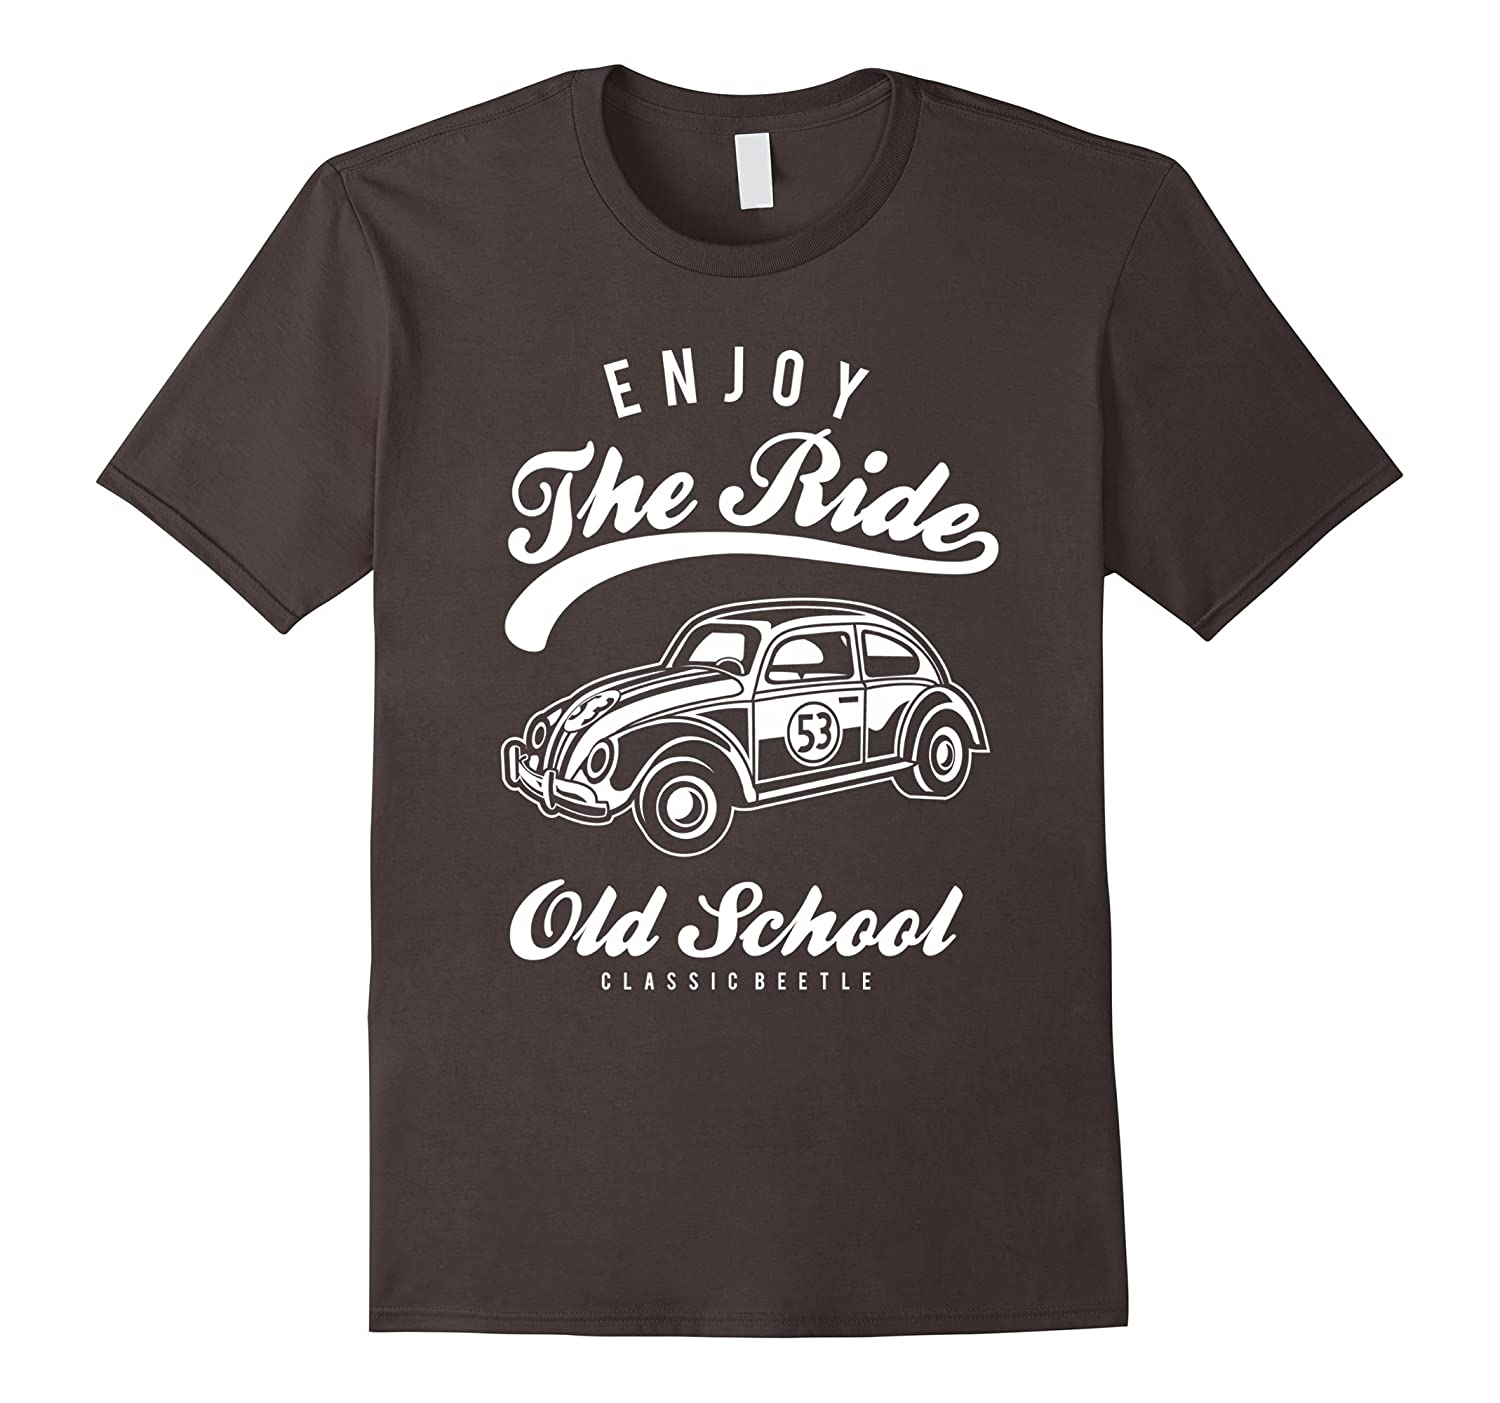 Enjoy the ride old school classic beetle T-shirt-CL – Colamaga